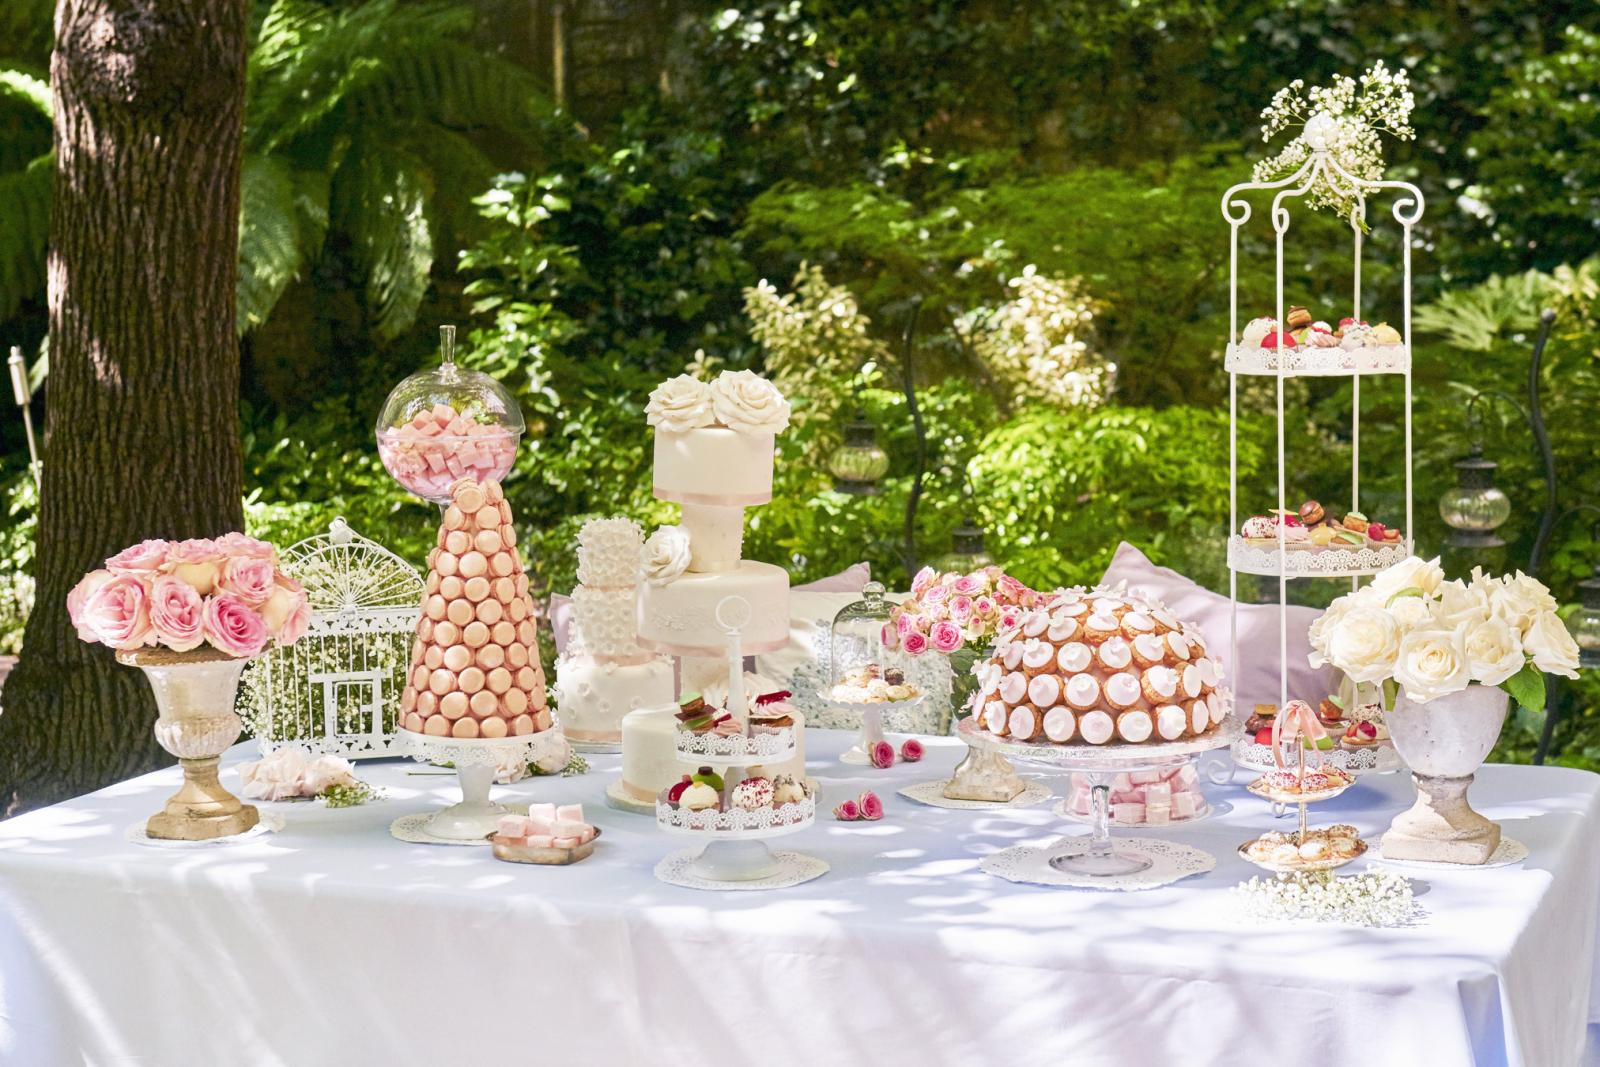 Cake buffet for a wedding in a garden